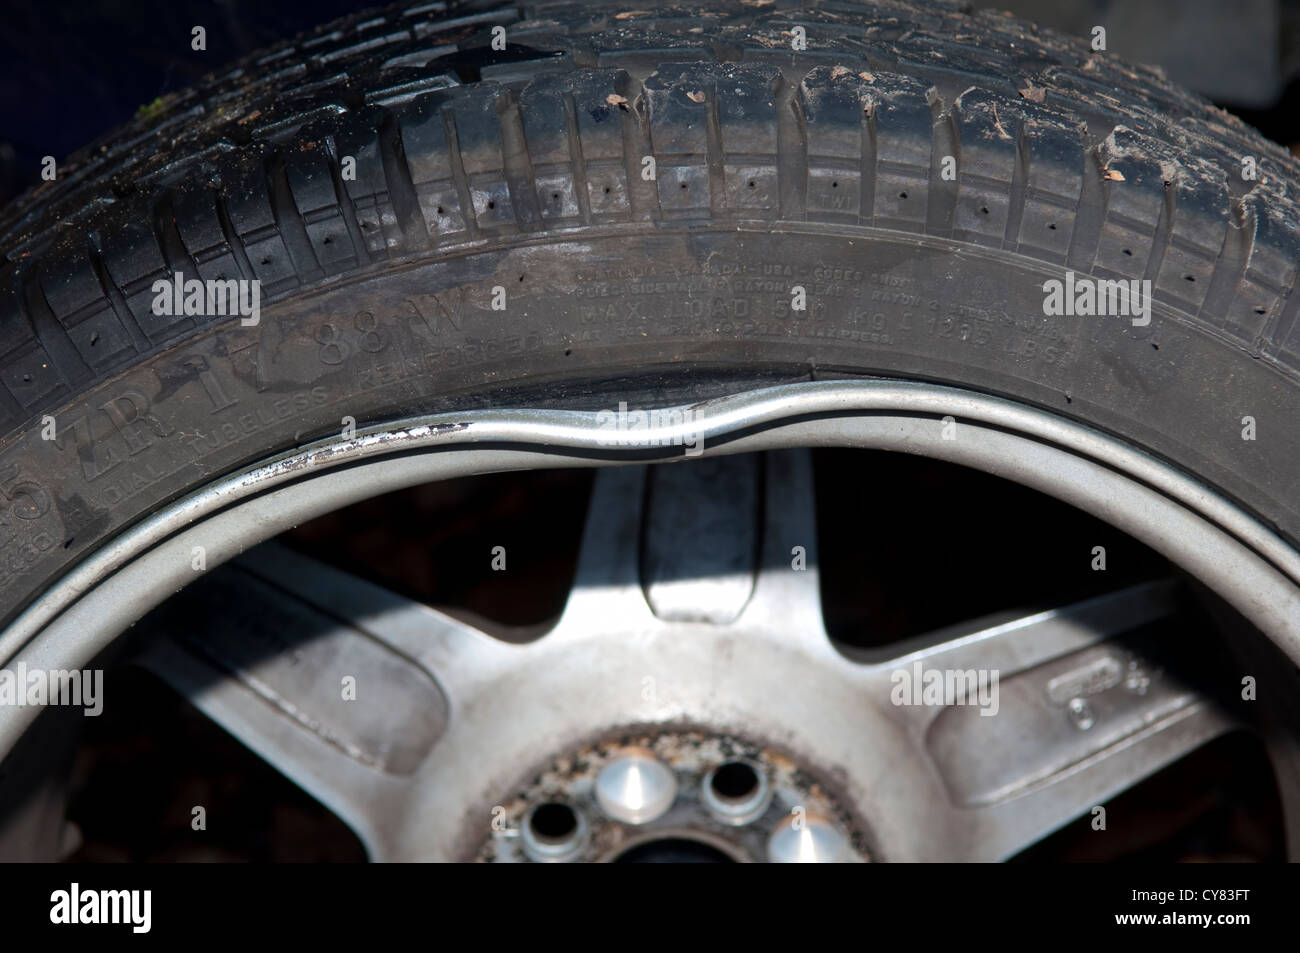 Wheel rim damage caused by a pothole Stock Photo: 51194860 ...